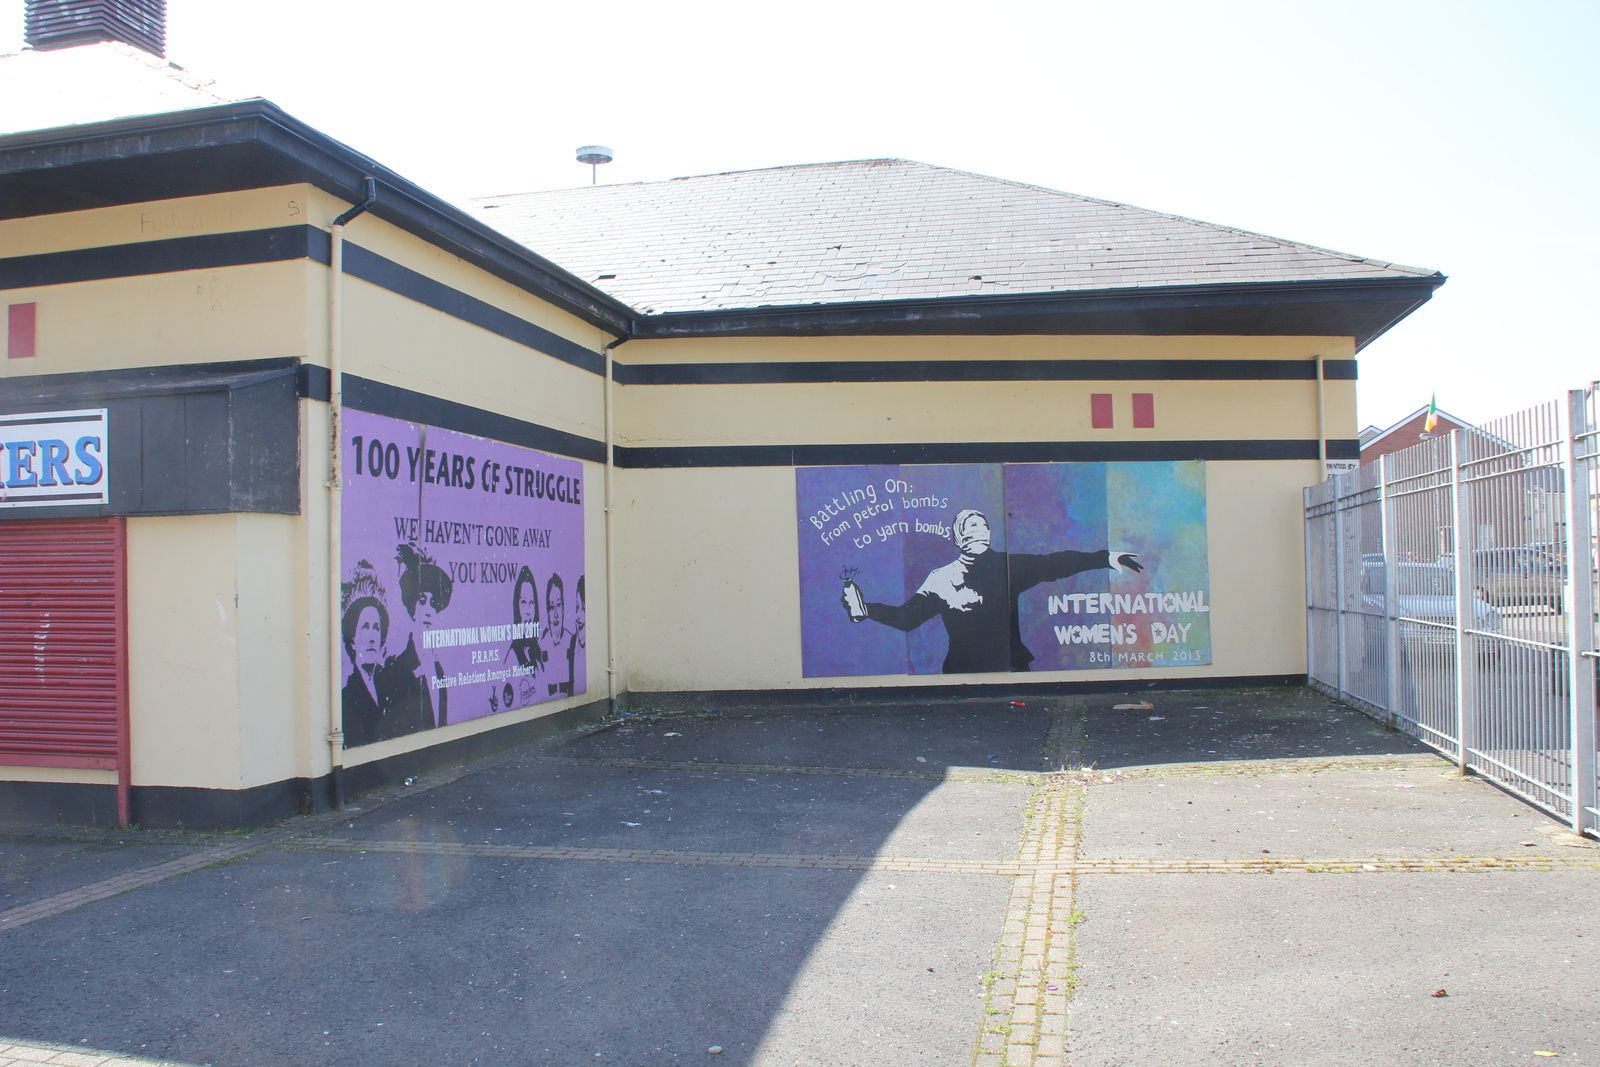 548) Meenan Square, Derry